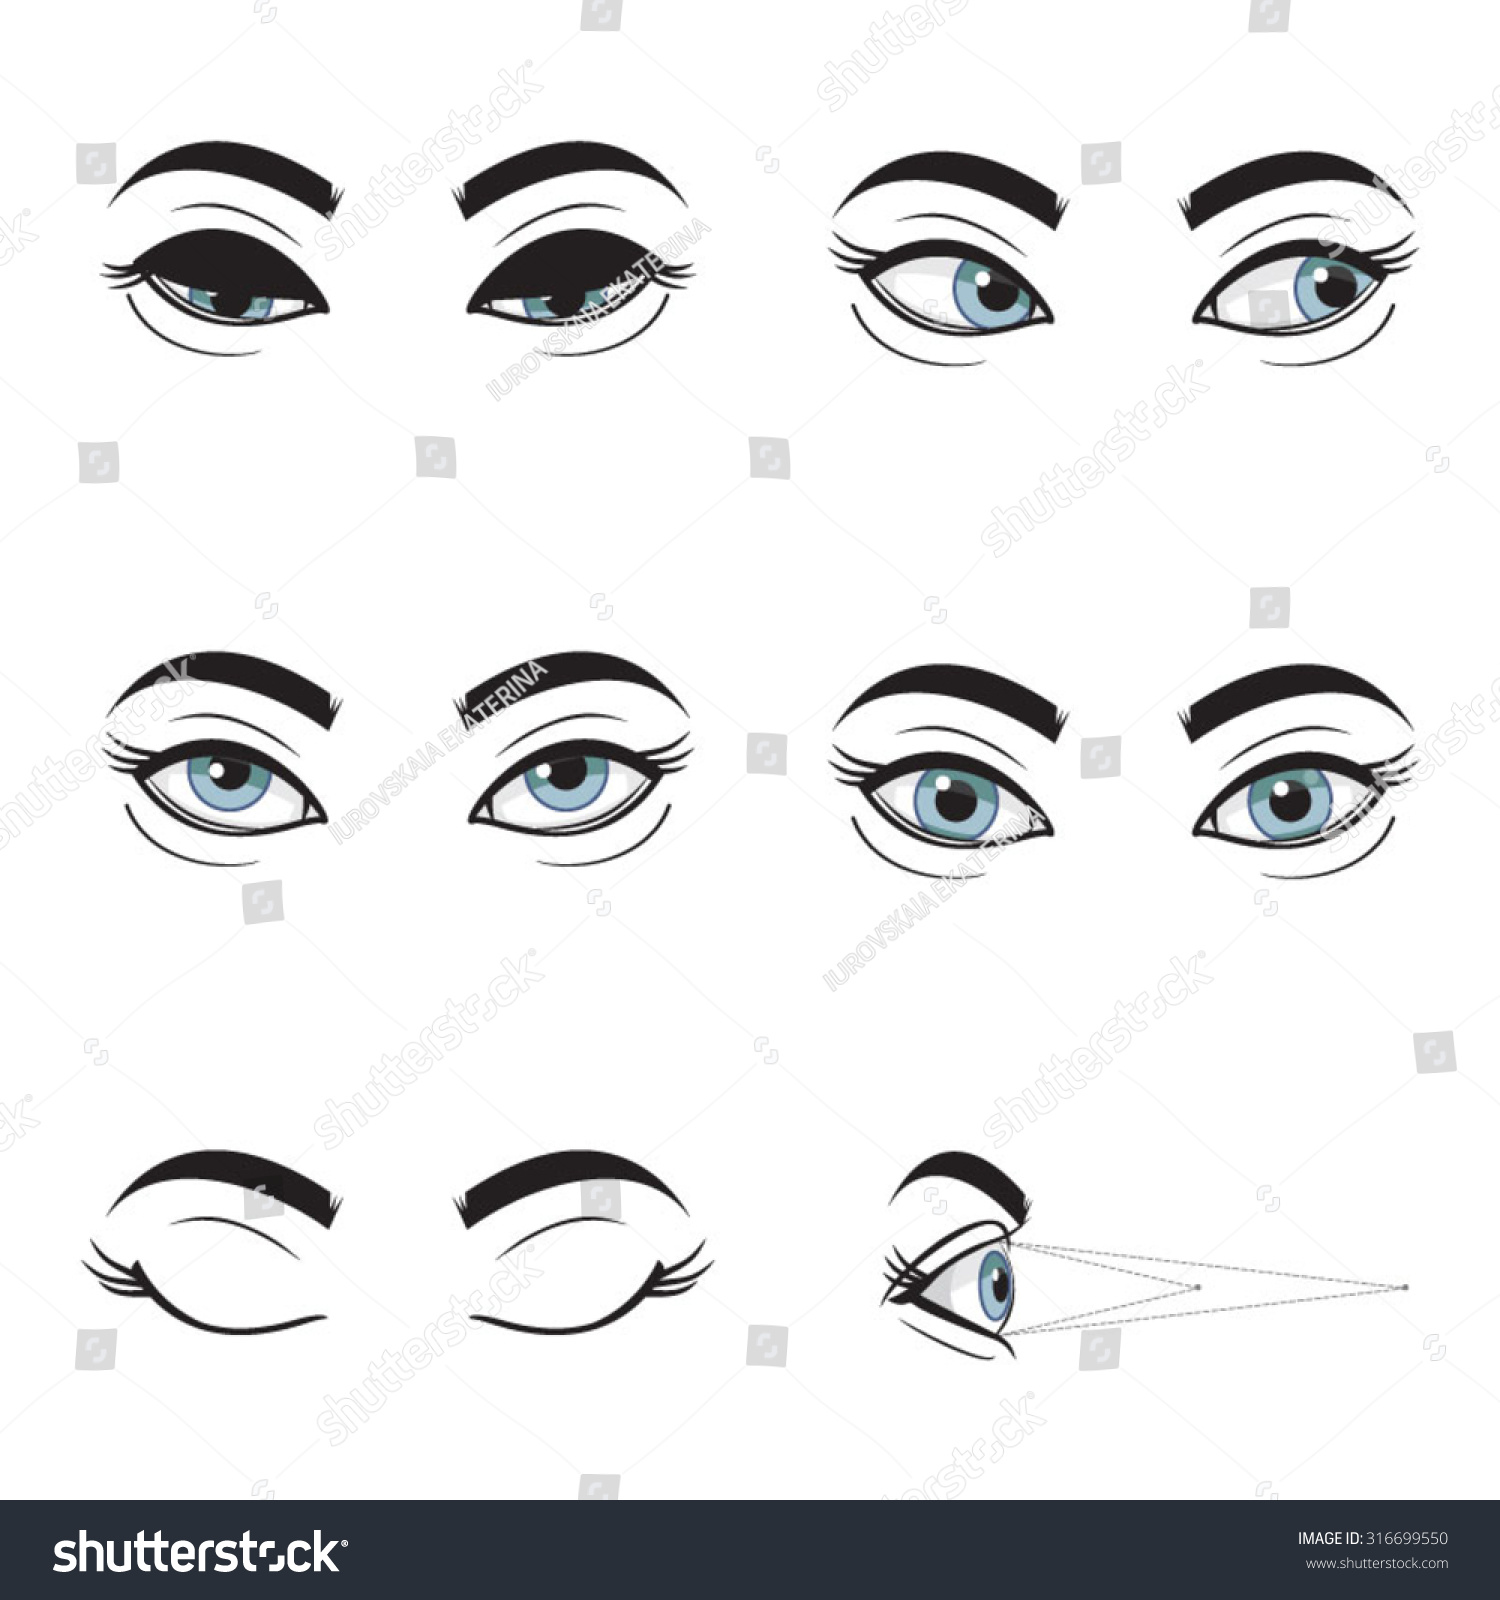 Set collection of blue female eyes and brows on white background different cartoon eye expressions